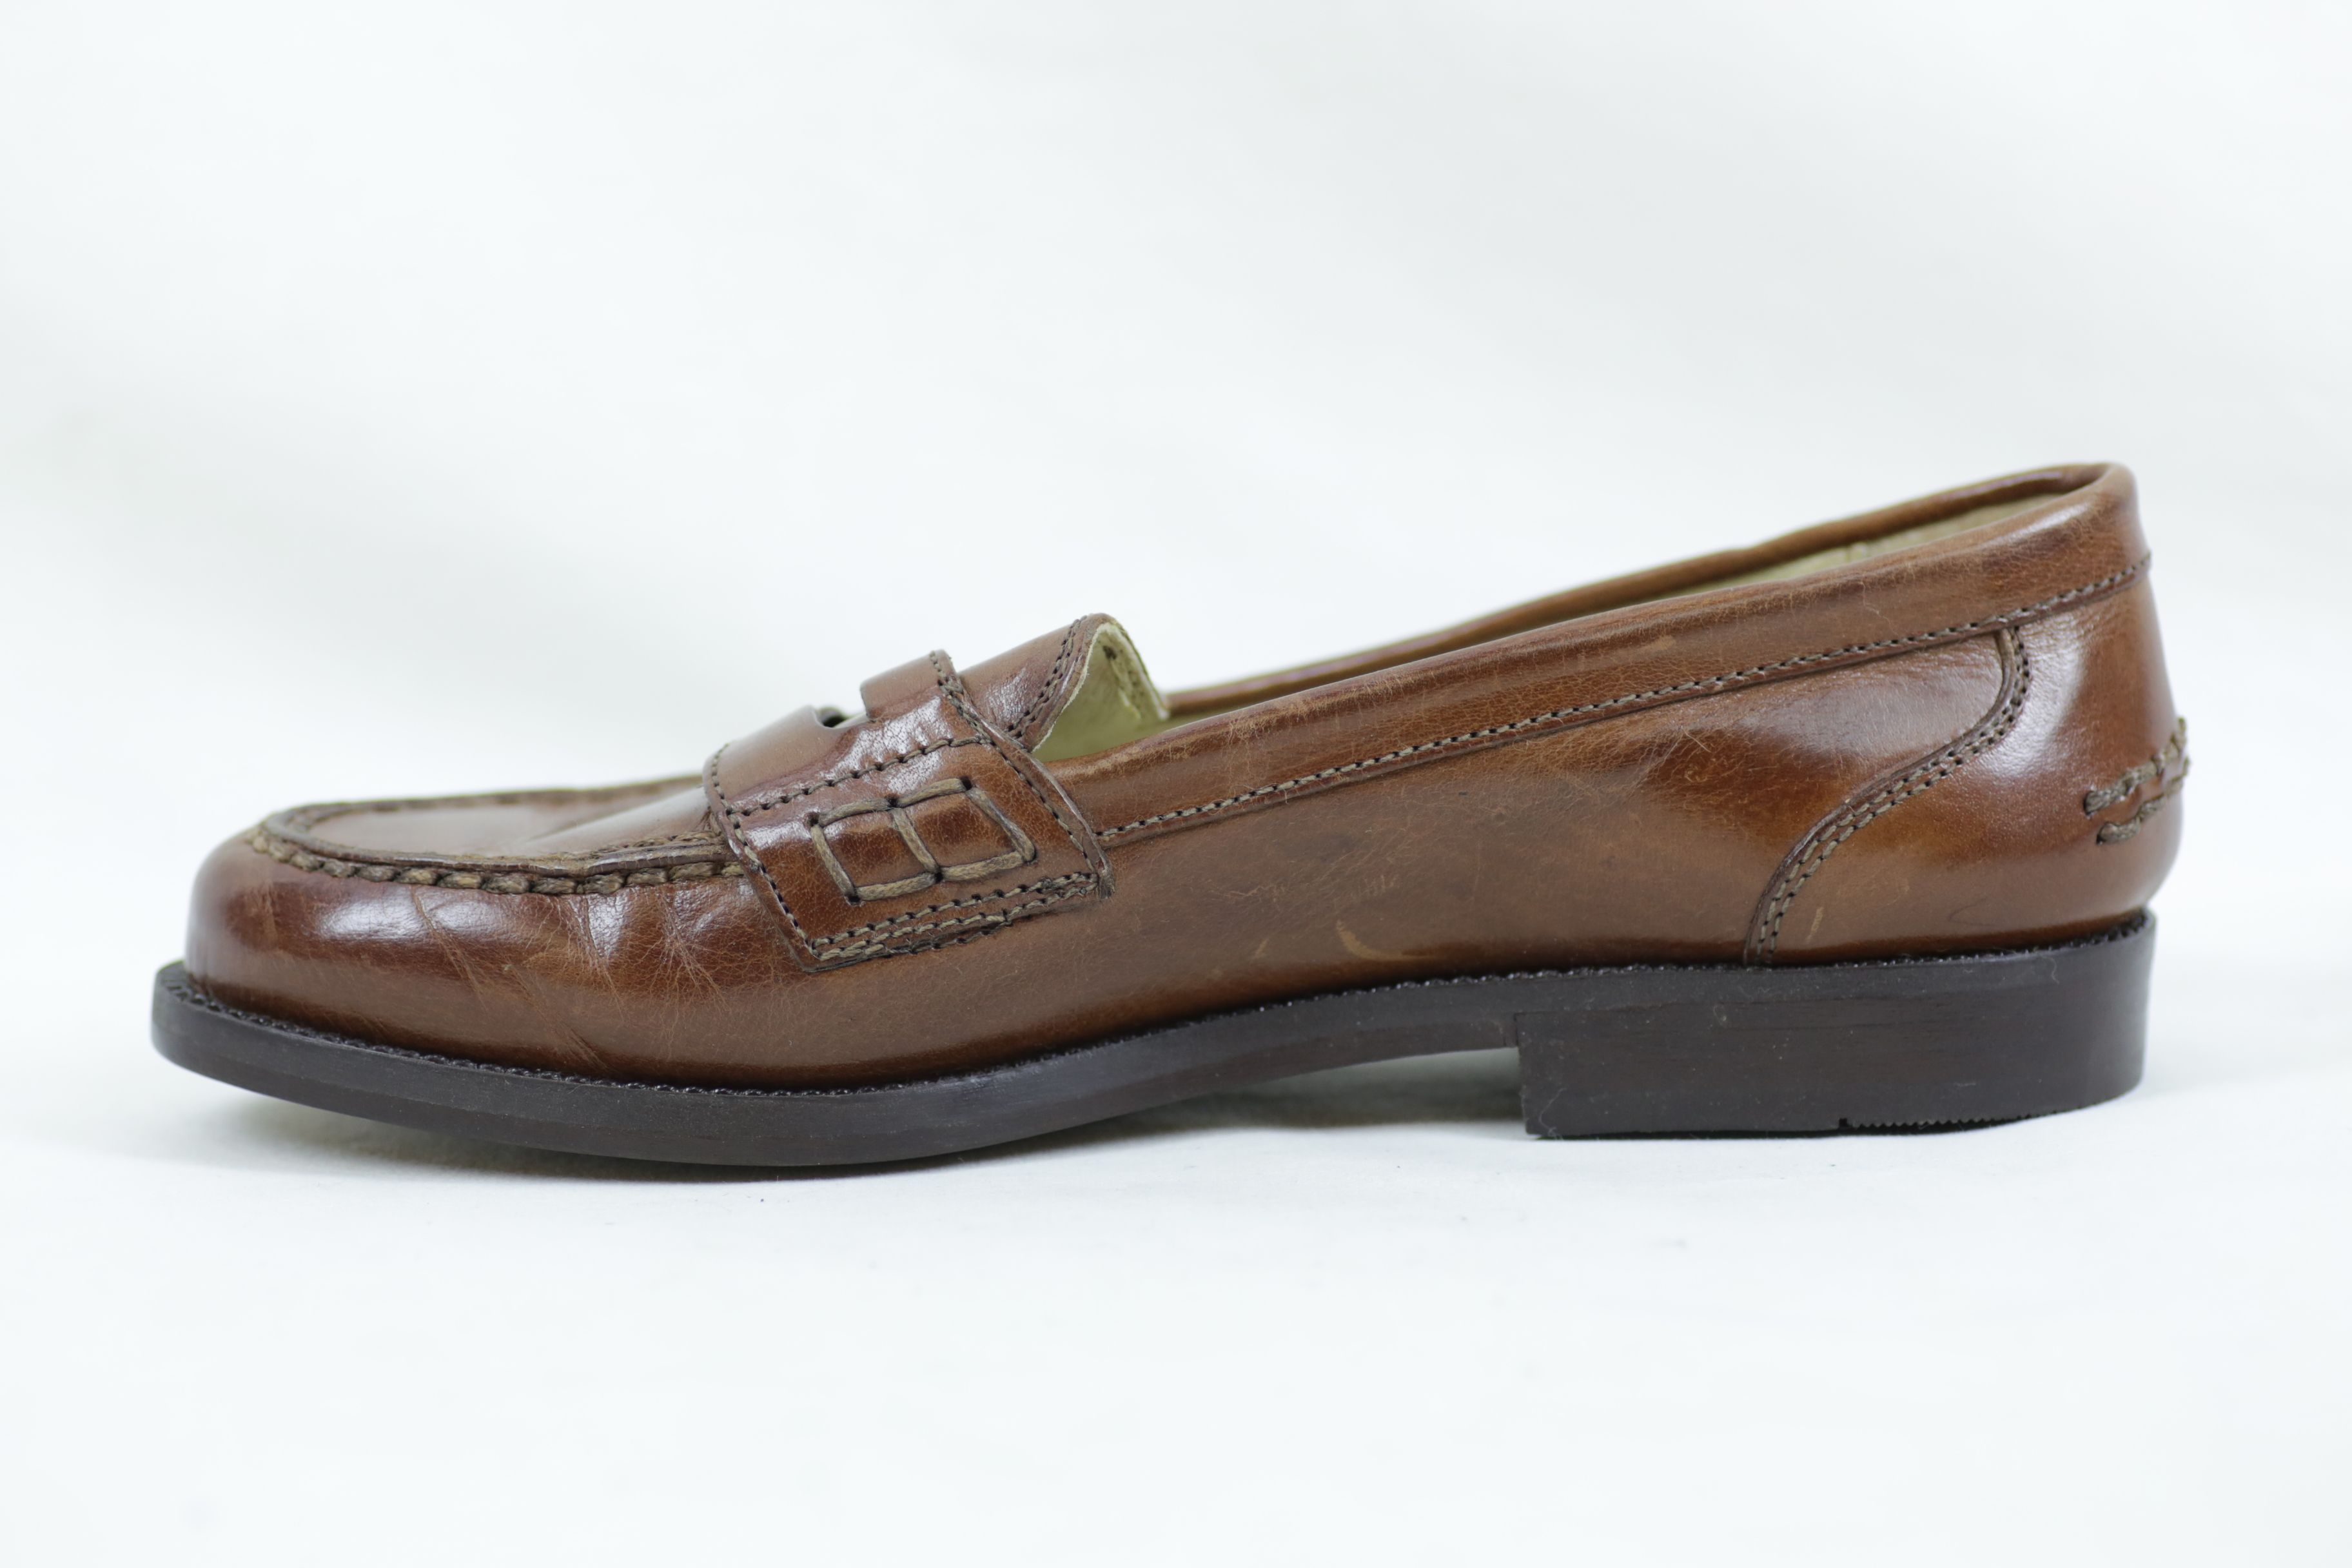 Bally Brim Classic Mid Brown Leather Shoes / Loafers - Size EU 36.5 UK 3.5 Thumbnail 8